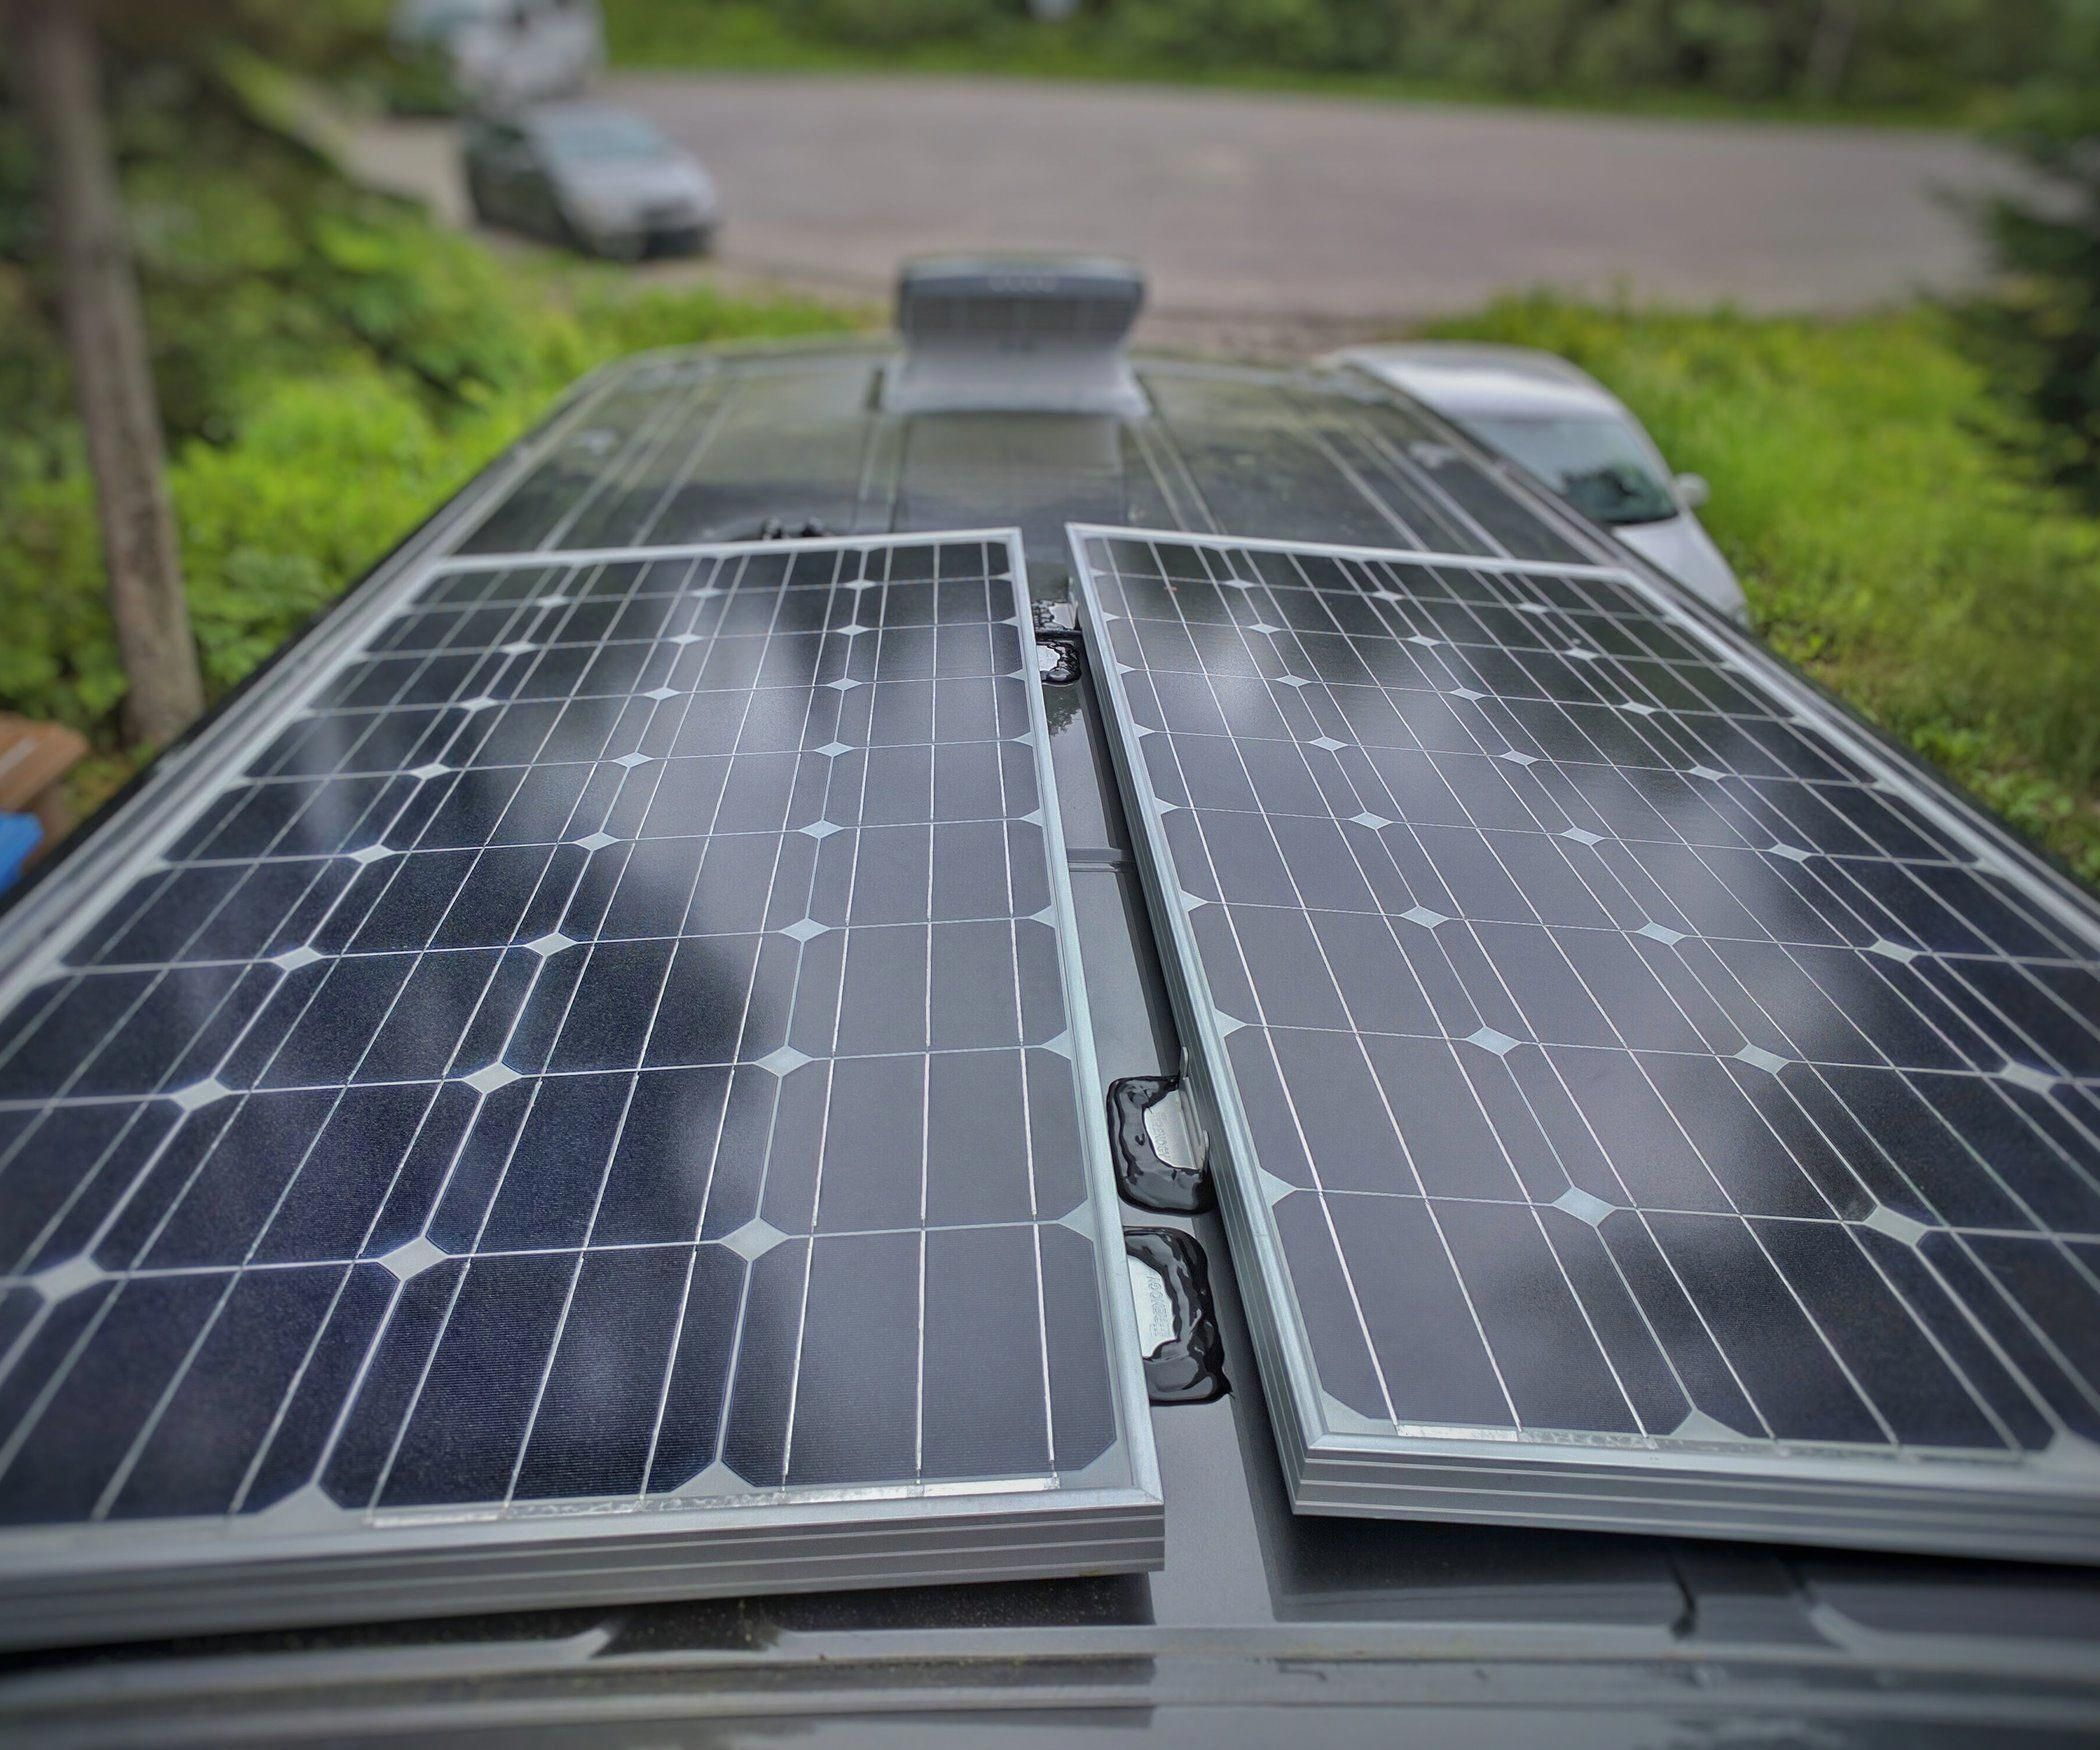 How To Install Solar Panel S On A Camper Van Conversion With Images Solar Panels Best Solar Panels Solar Panel Installation